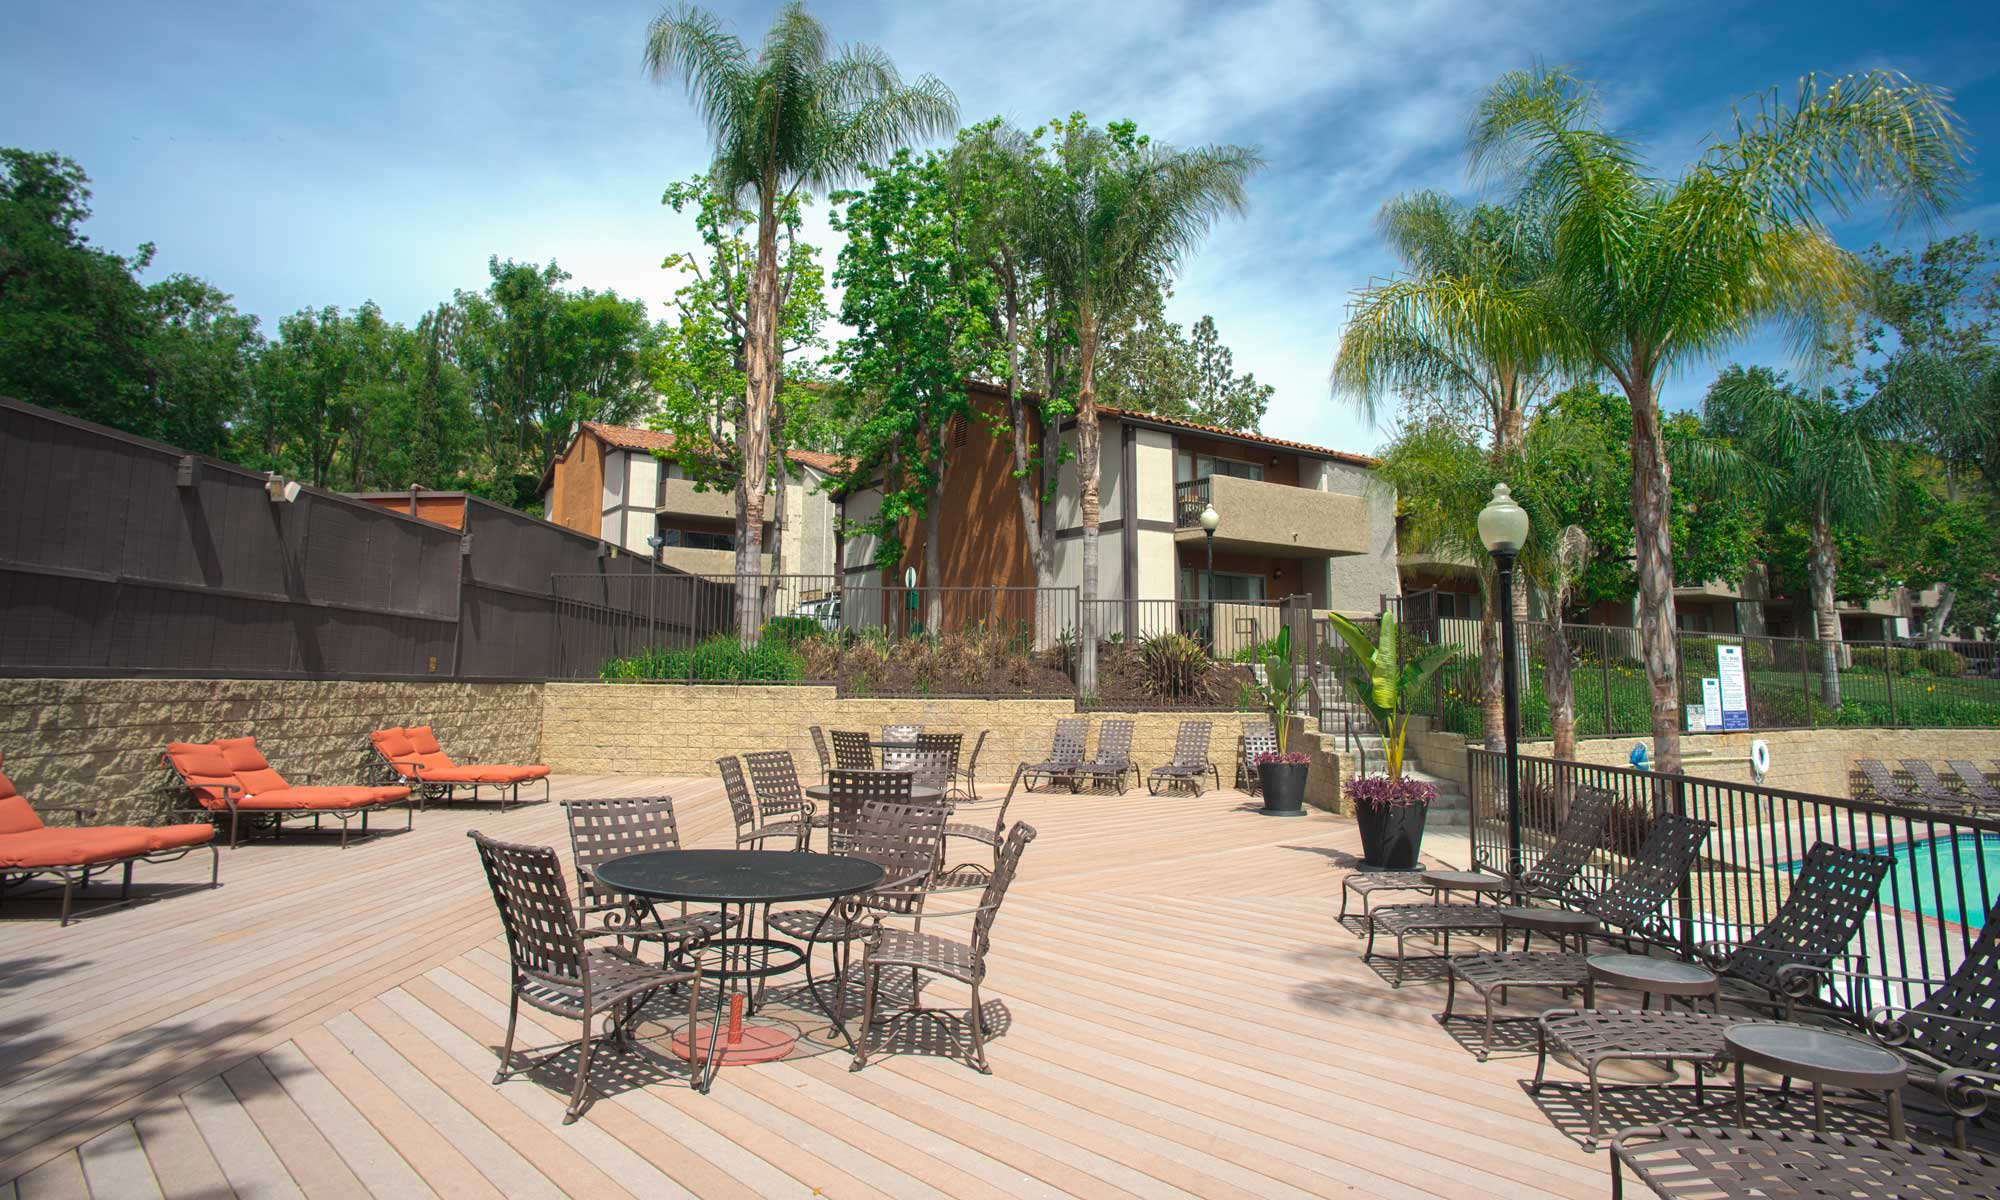 Apartments in Thousand Oaks, CA